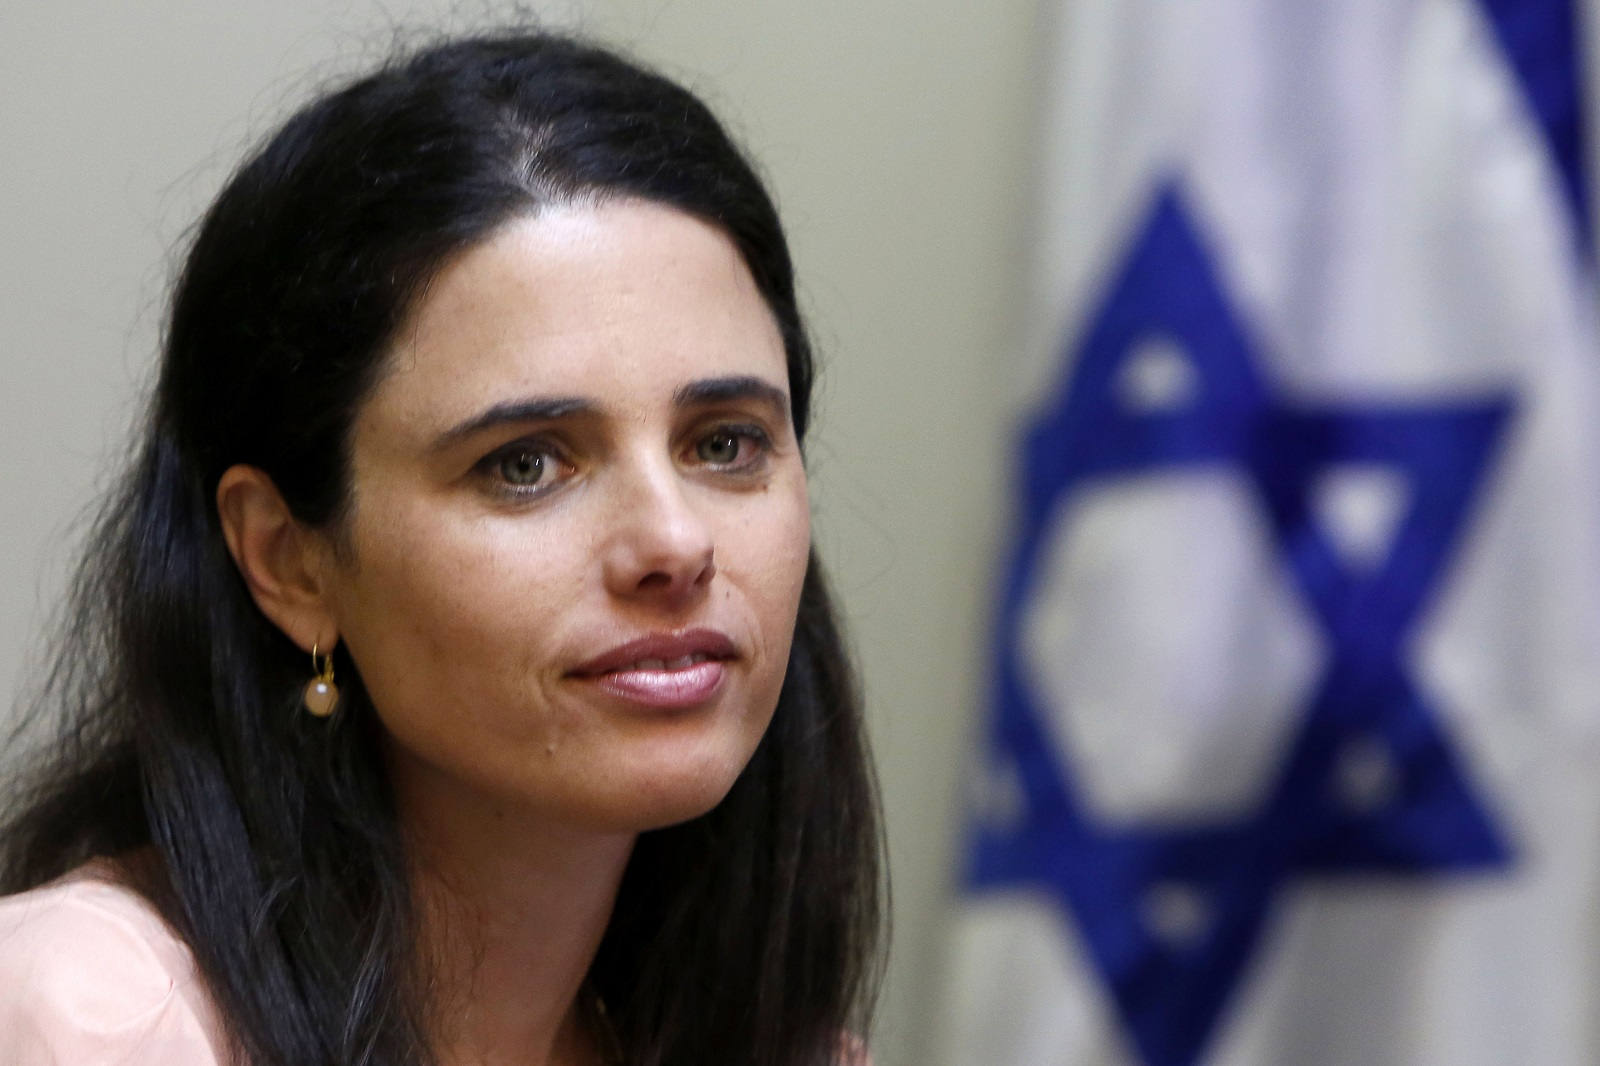 Ayelet Shaked is Israel's Justice Minister